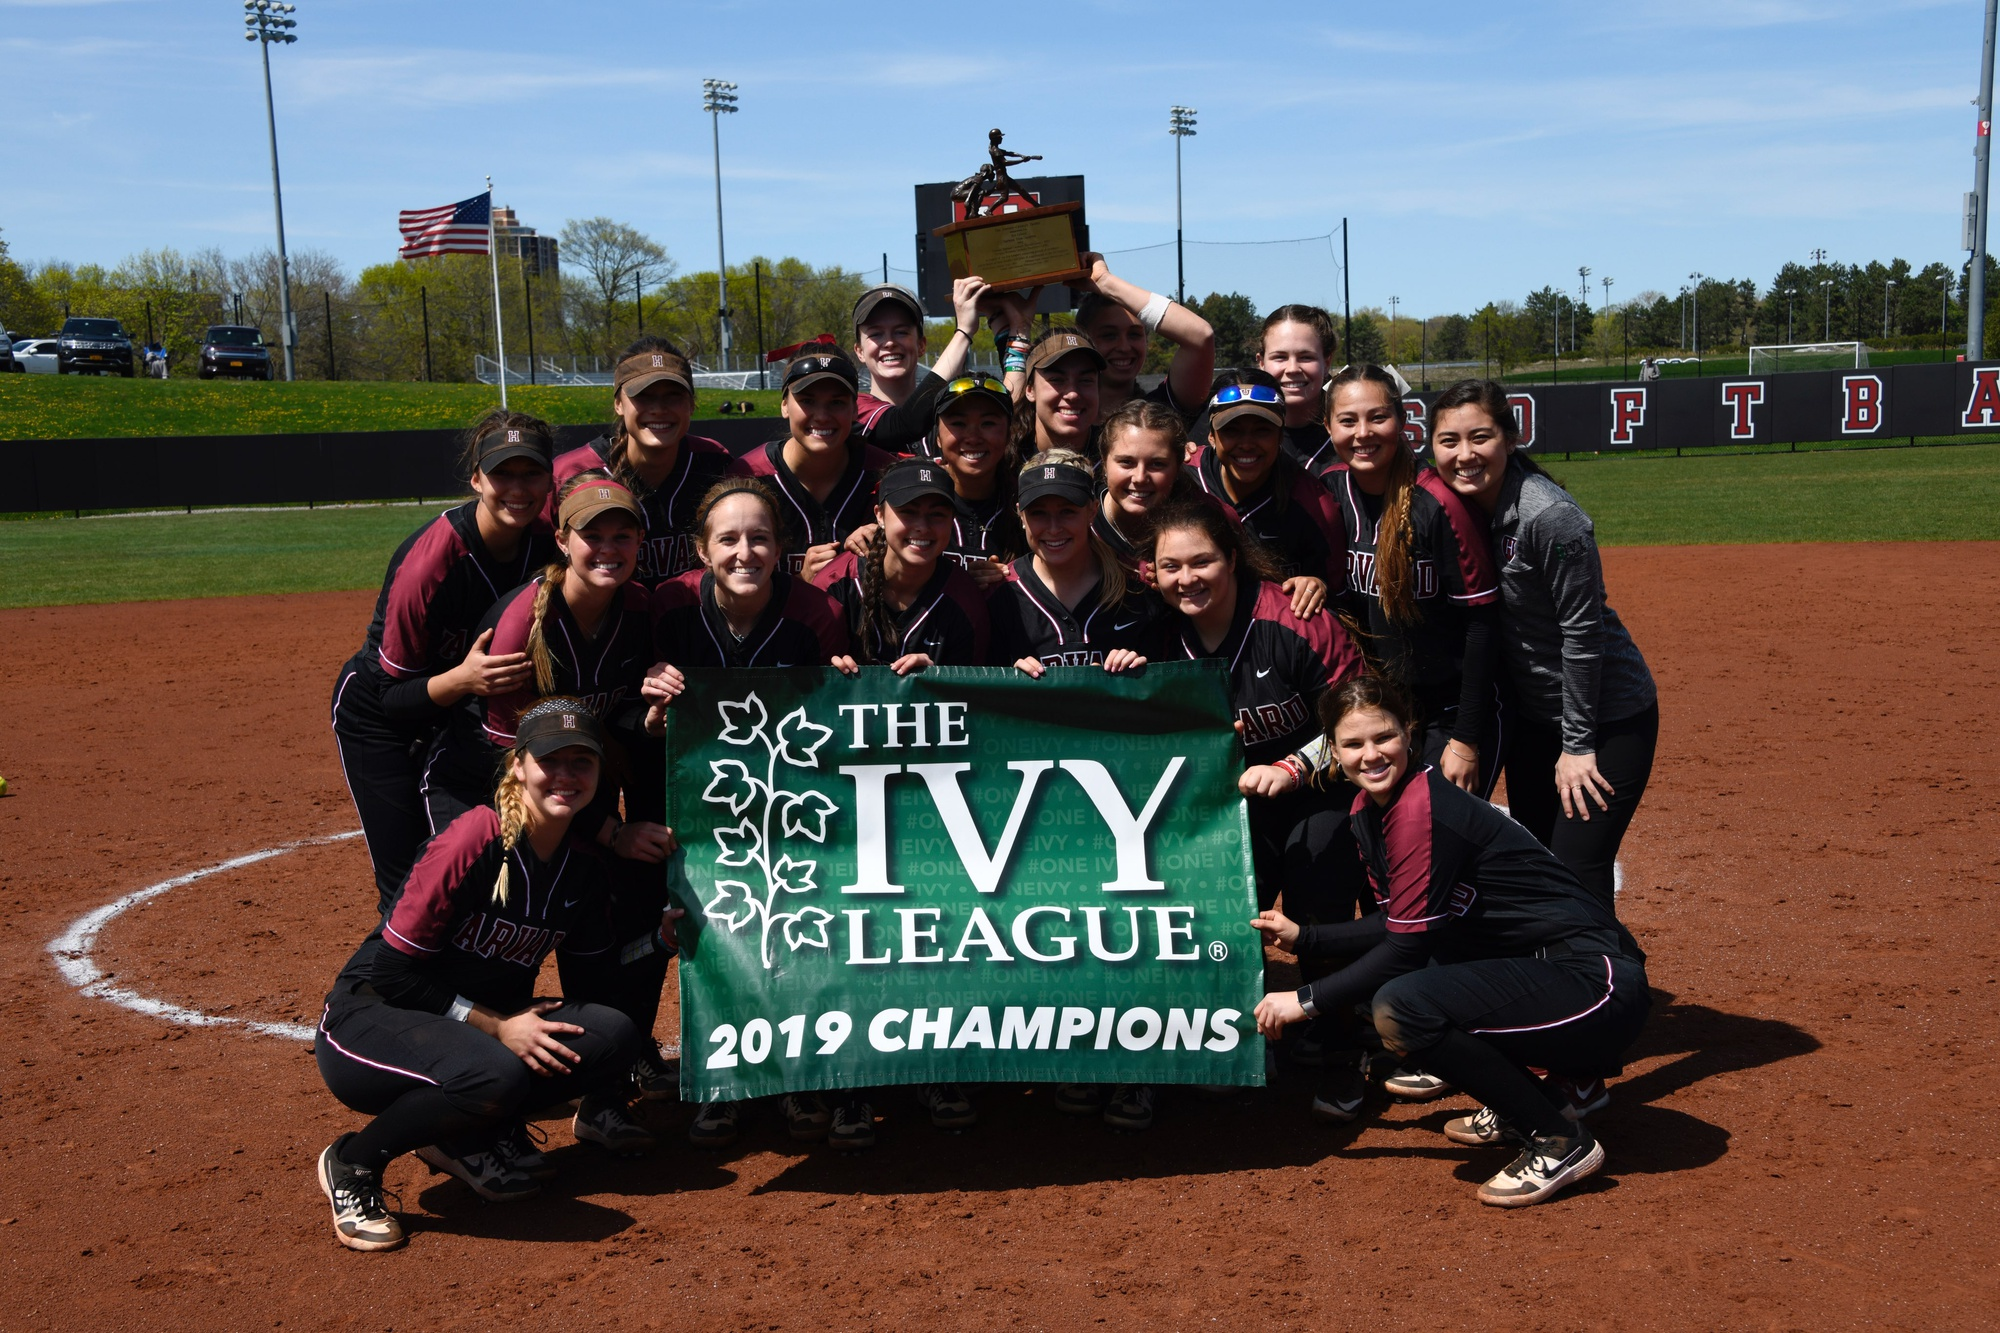 With its resounding 9-1 victory over Cornell earlier this week, the Crimson took home the outright regular season championship for the Ivy League.